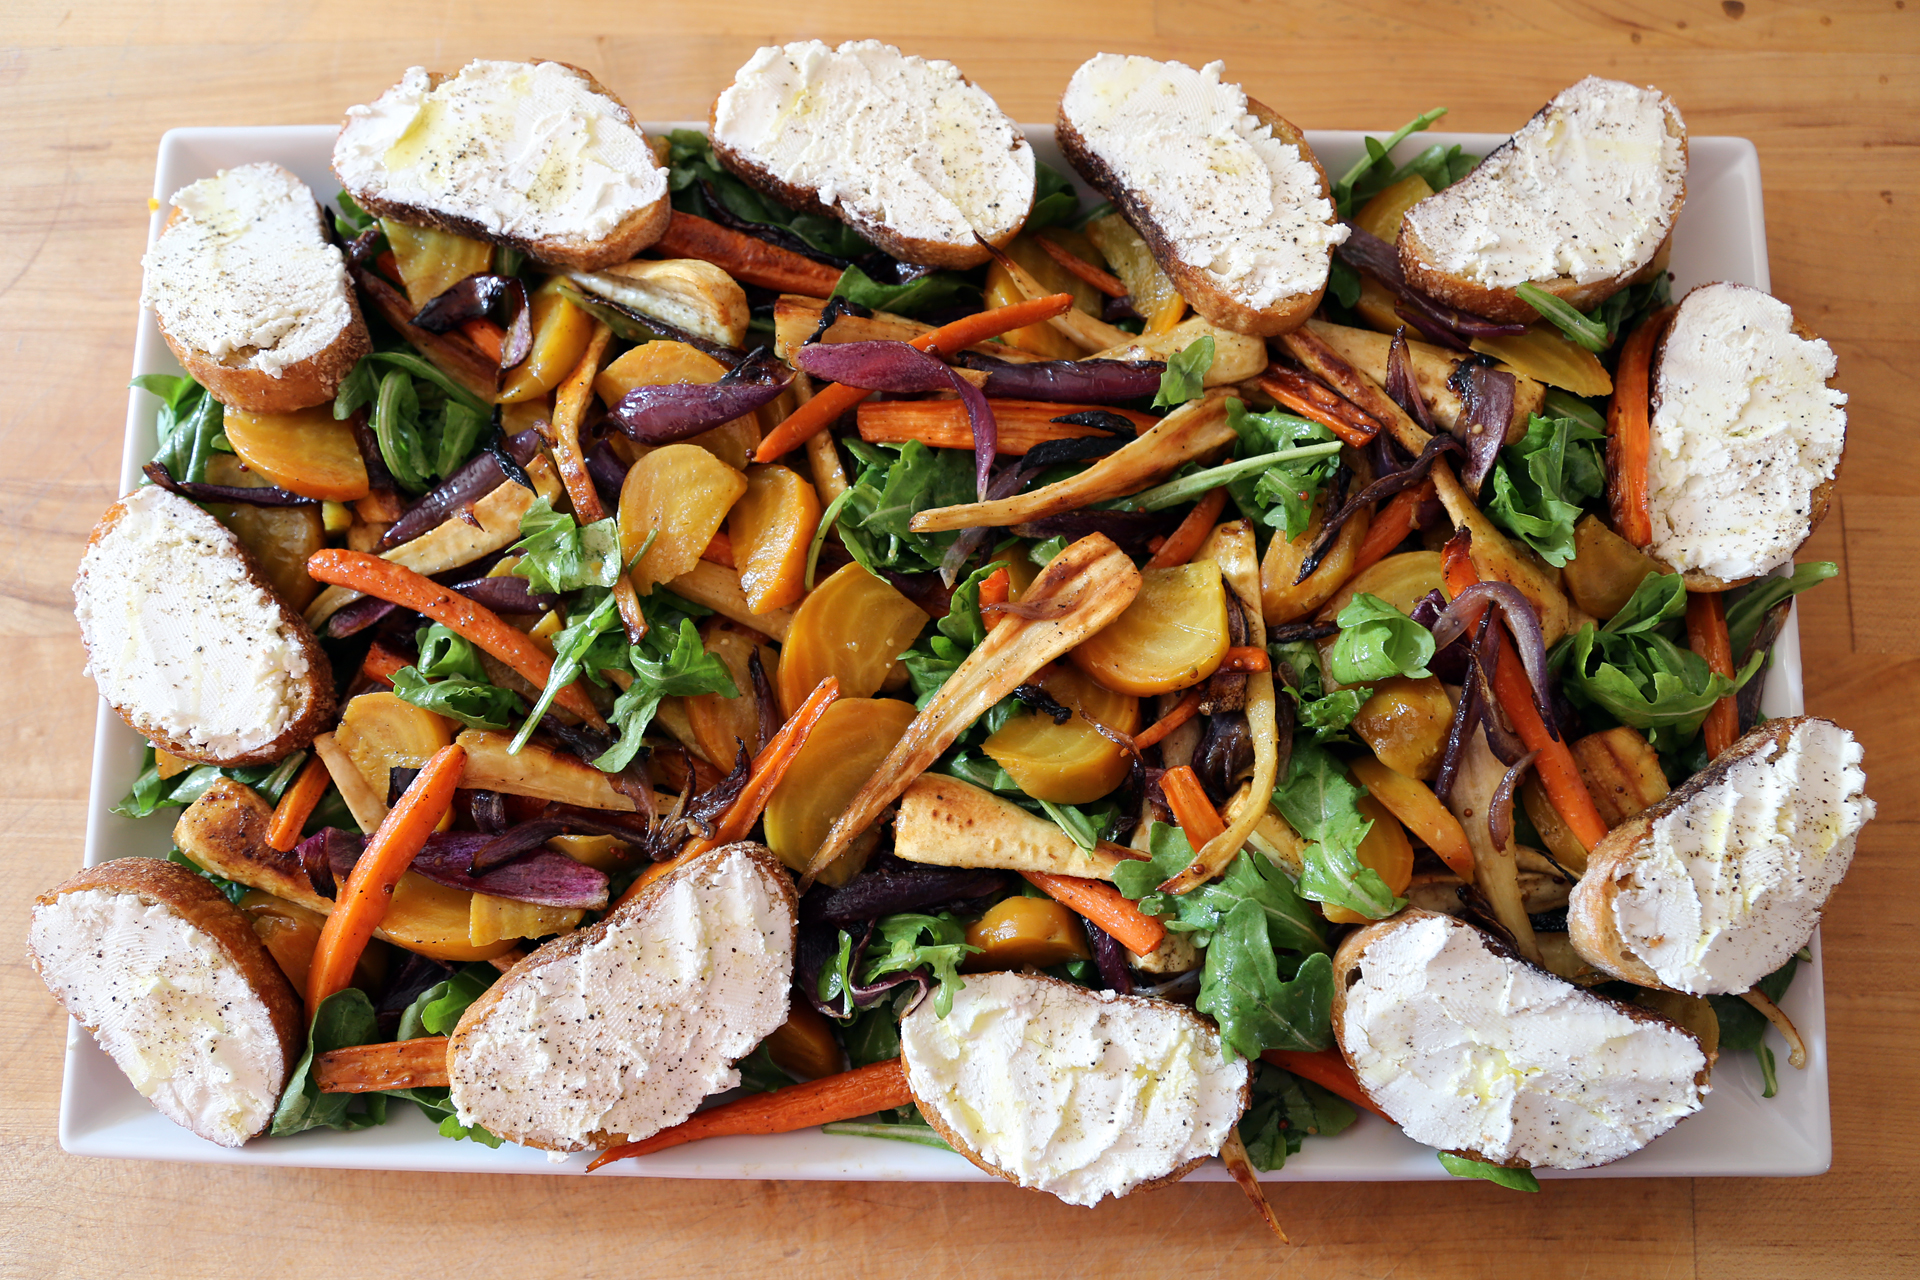 Autumn Root Vegetable Salad with Goat Cheese Crostini